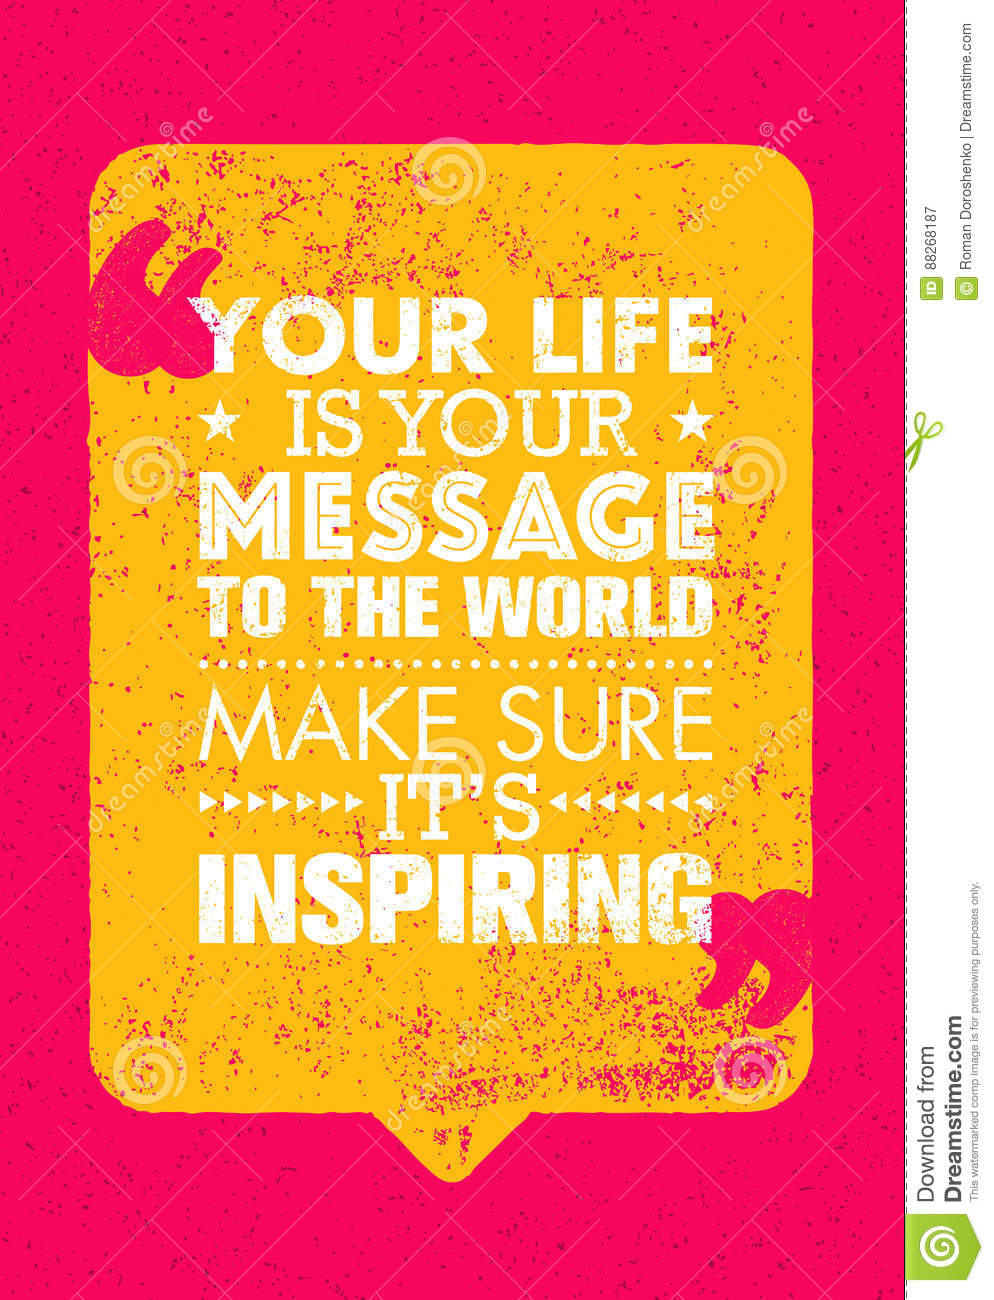 This Is Your Life Quote Your Life Is Your Message To The Worldmake Sure Its Inspiring